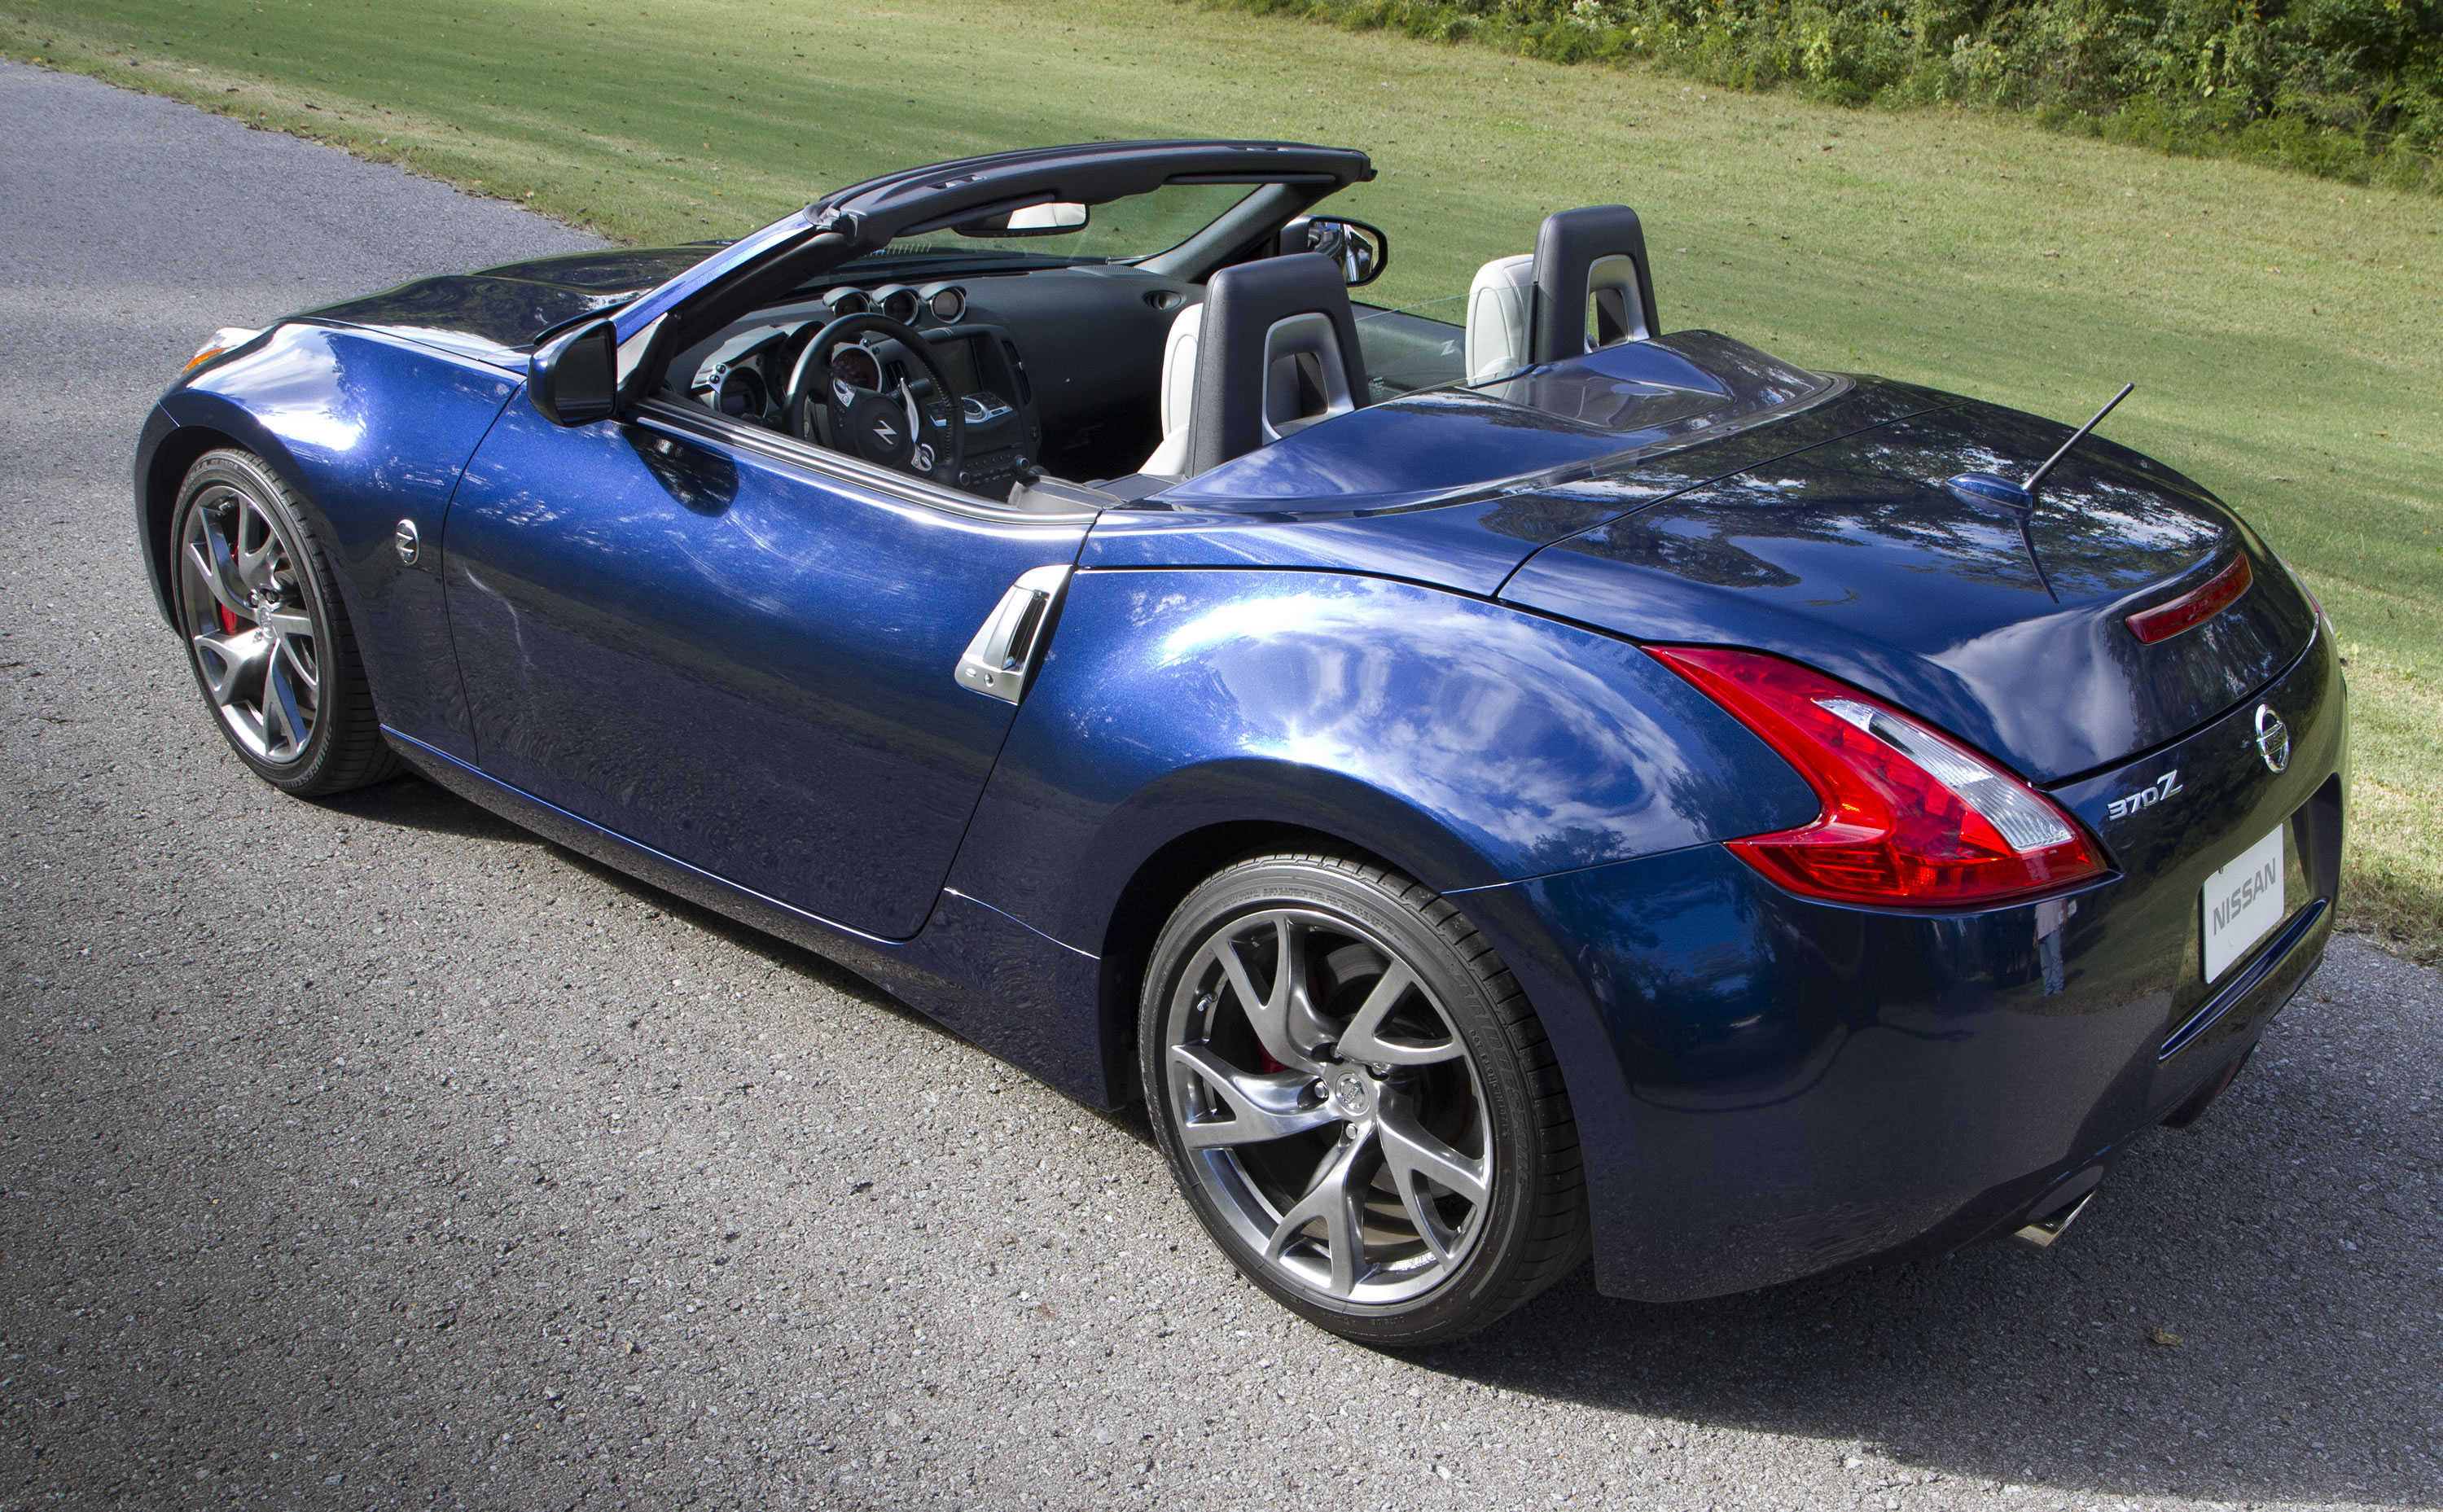 2014 Nissan 370Z Roadster Photos, Specs and Review - RS